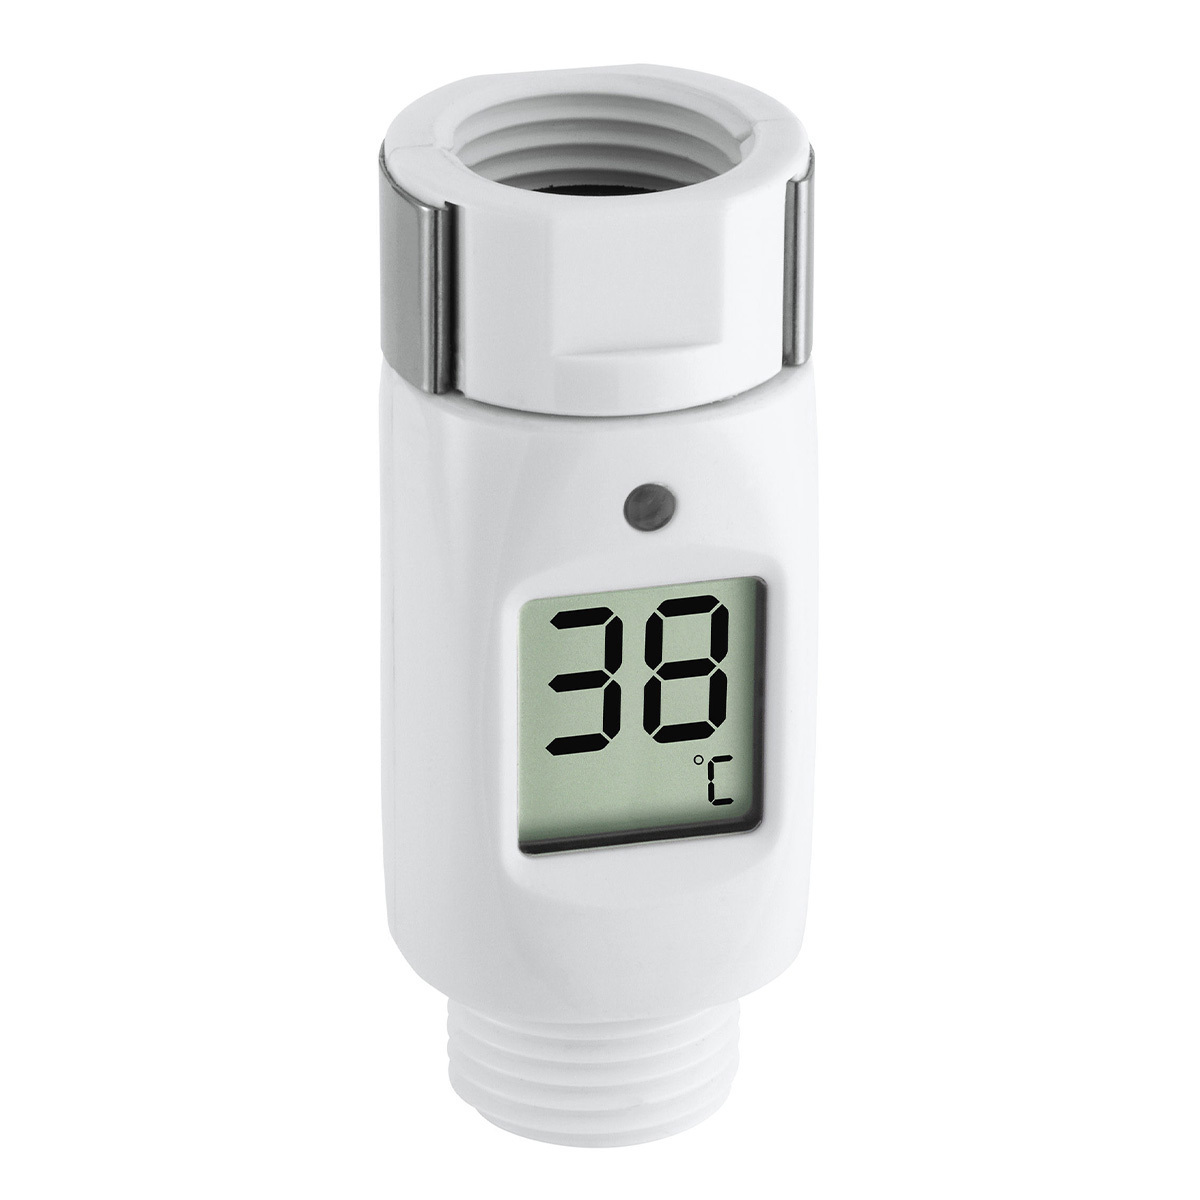 30-1046-digitales-duschthermometer-1200x1200px.jpg